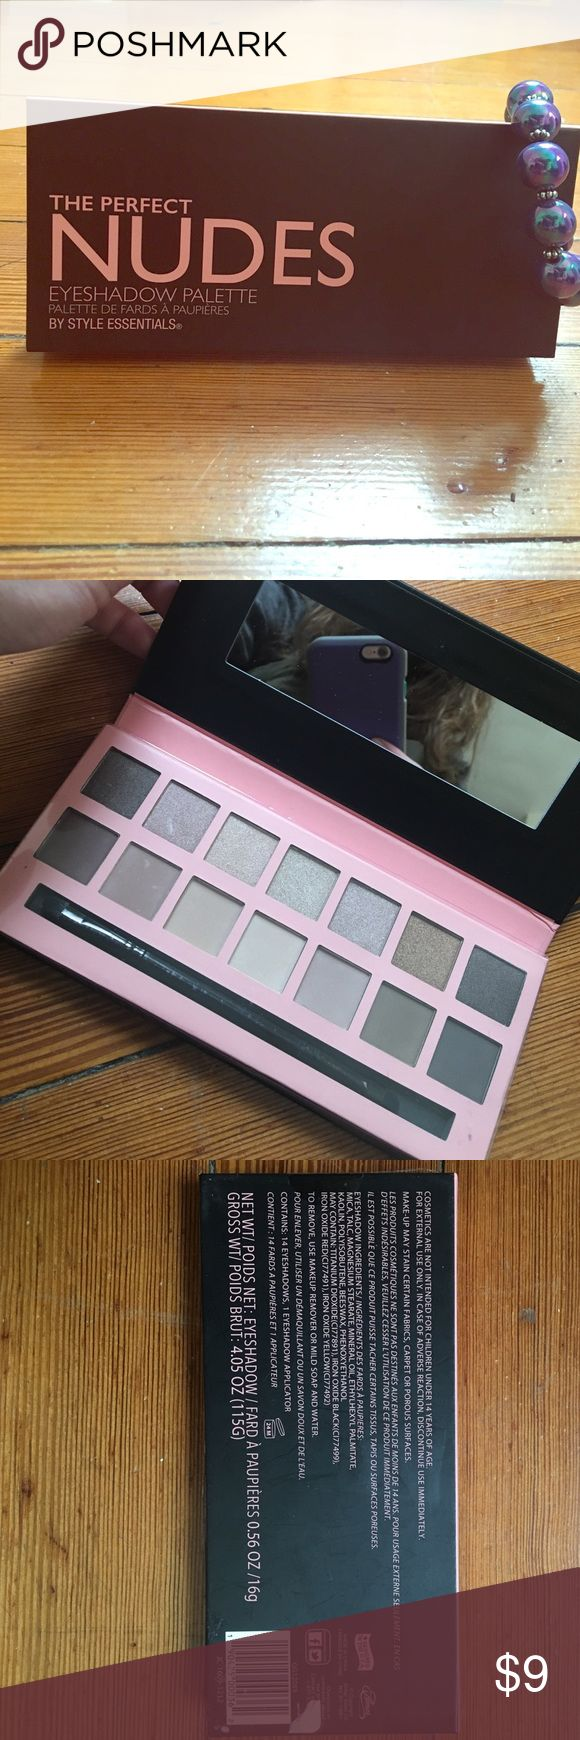 Nudes eyeshadow palette The perfect nudes eyeshadow palette is good for any skin tone! It has a wide range of colors to fit any occasion. Brand new! Makeup Eyeshadow